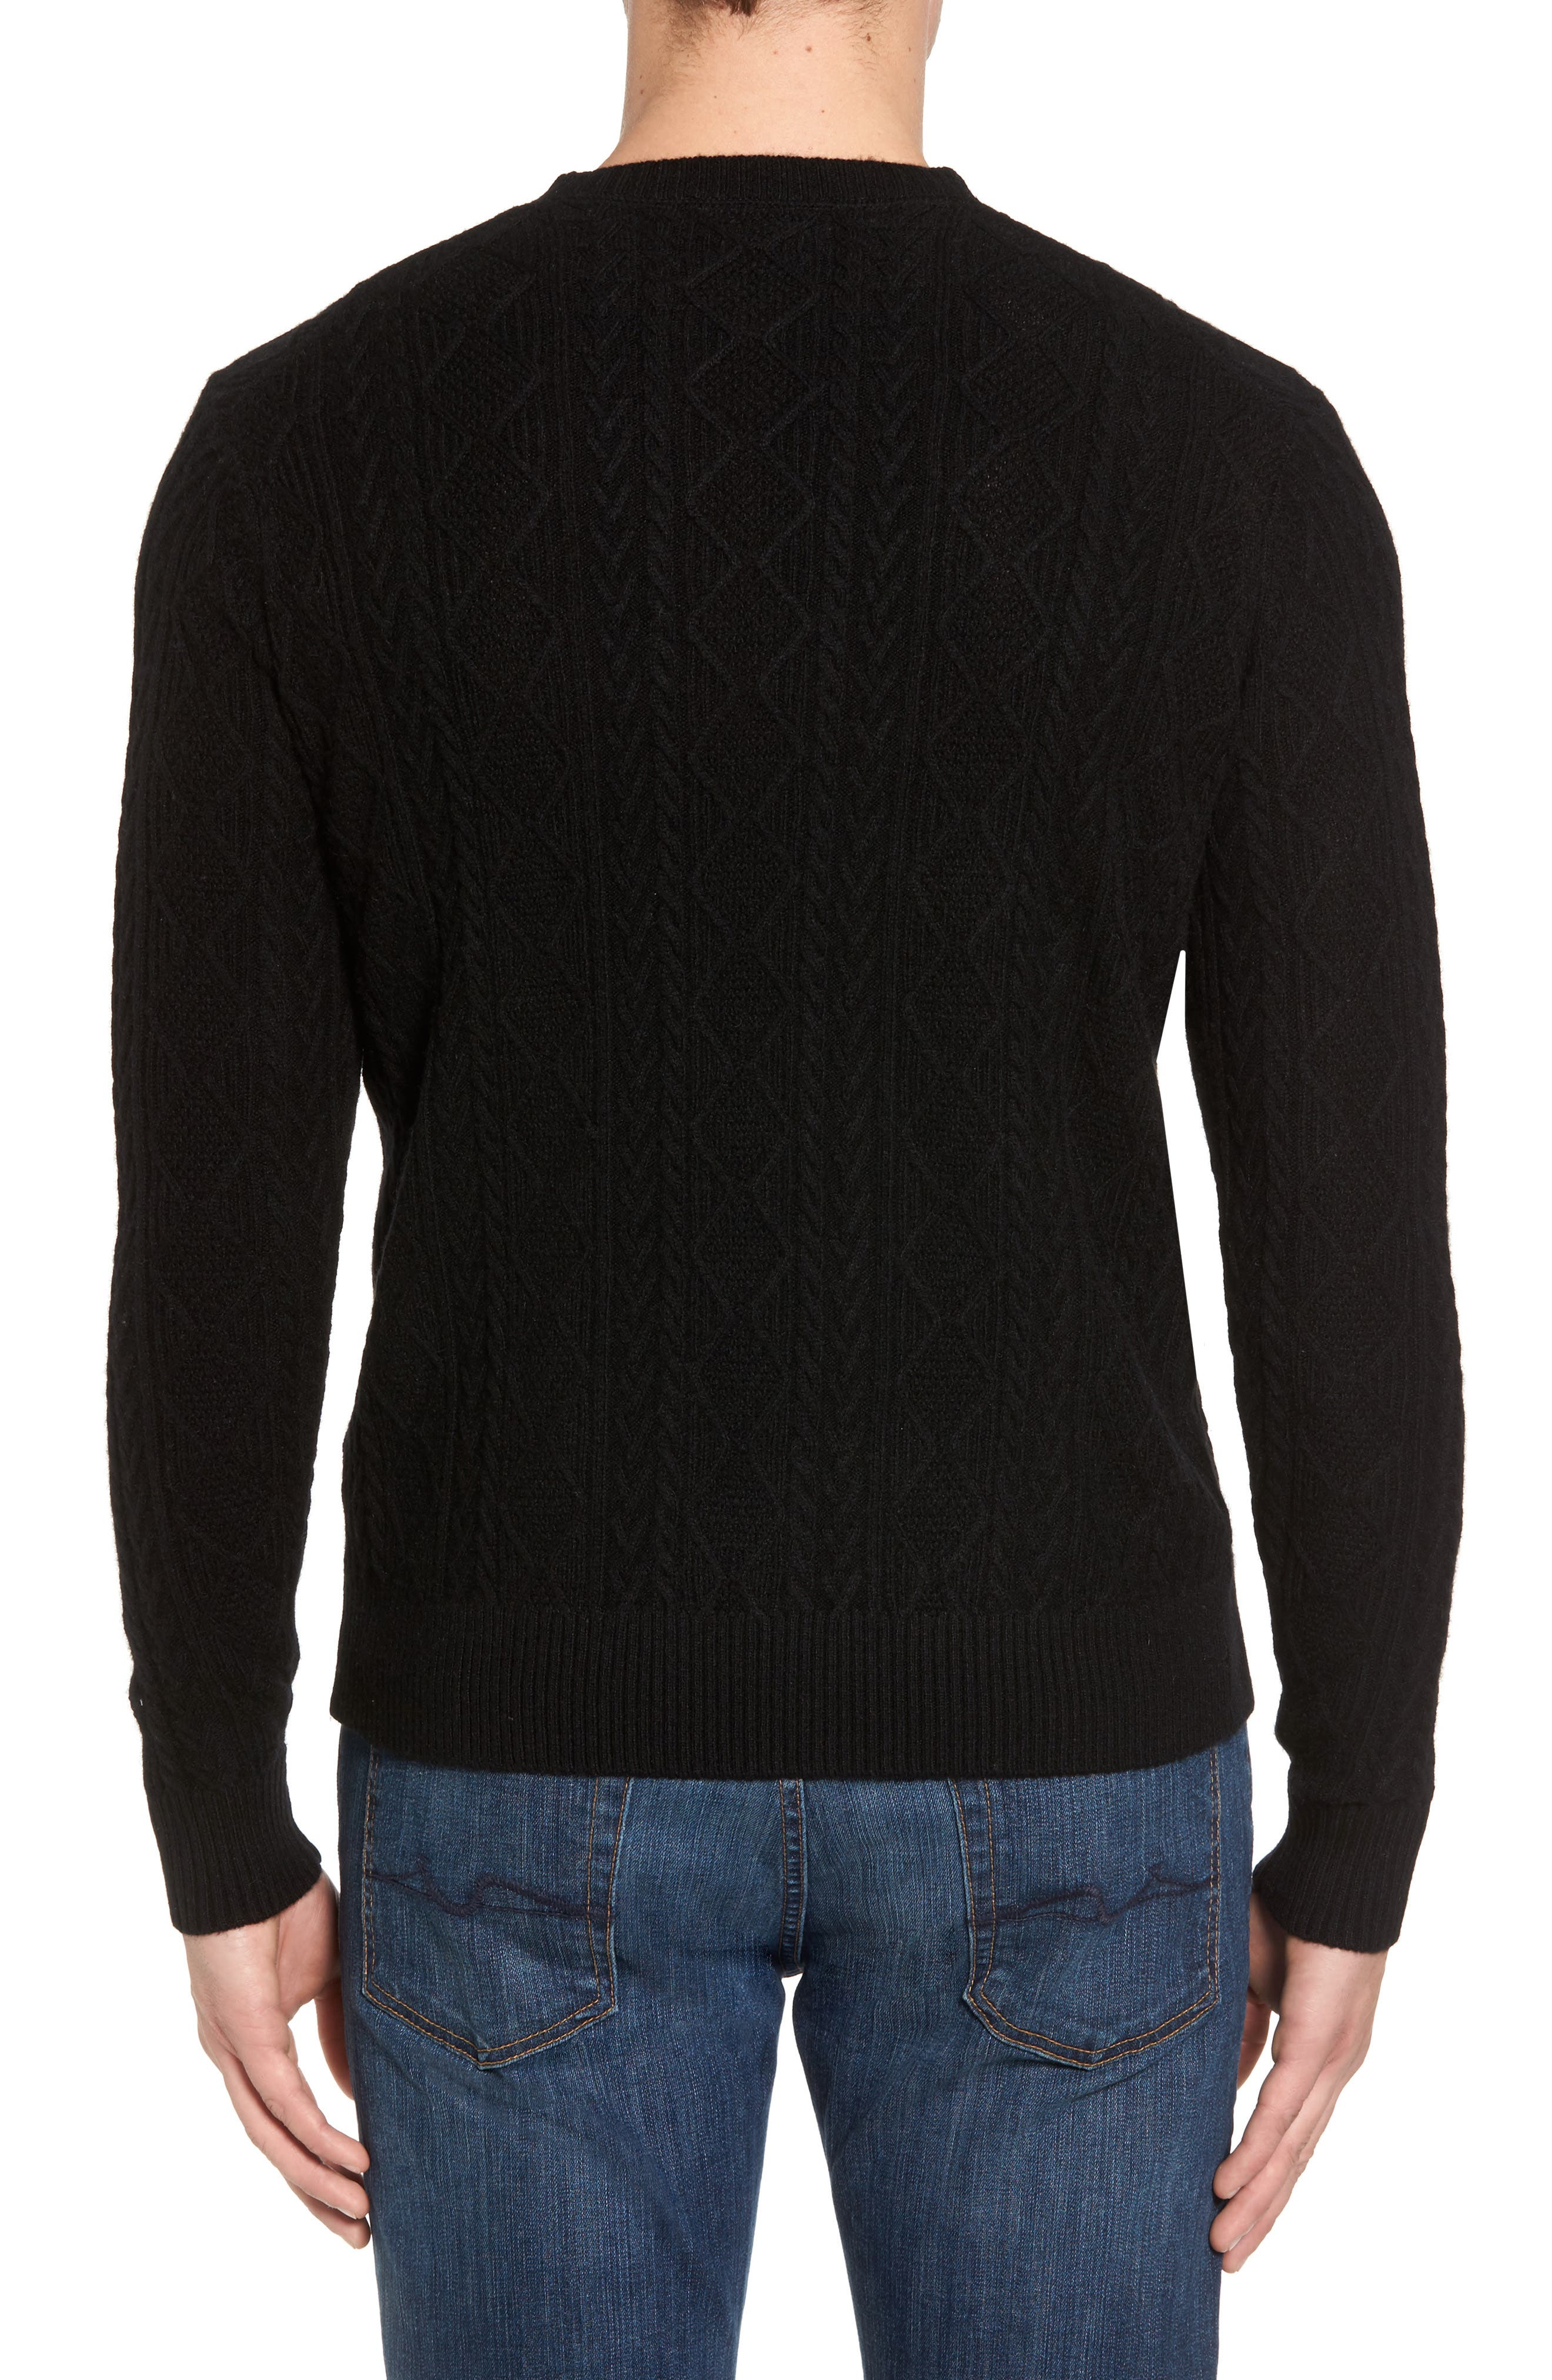 Crown Wool Blend Fisherman Sweater,                             Alternate thumbnail 2, color,                             001